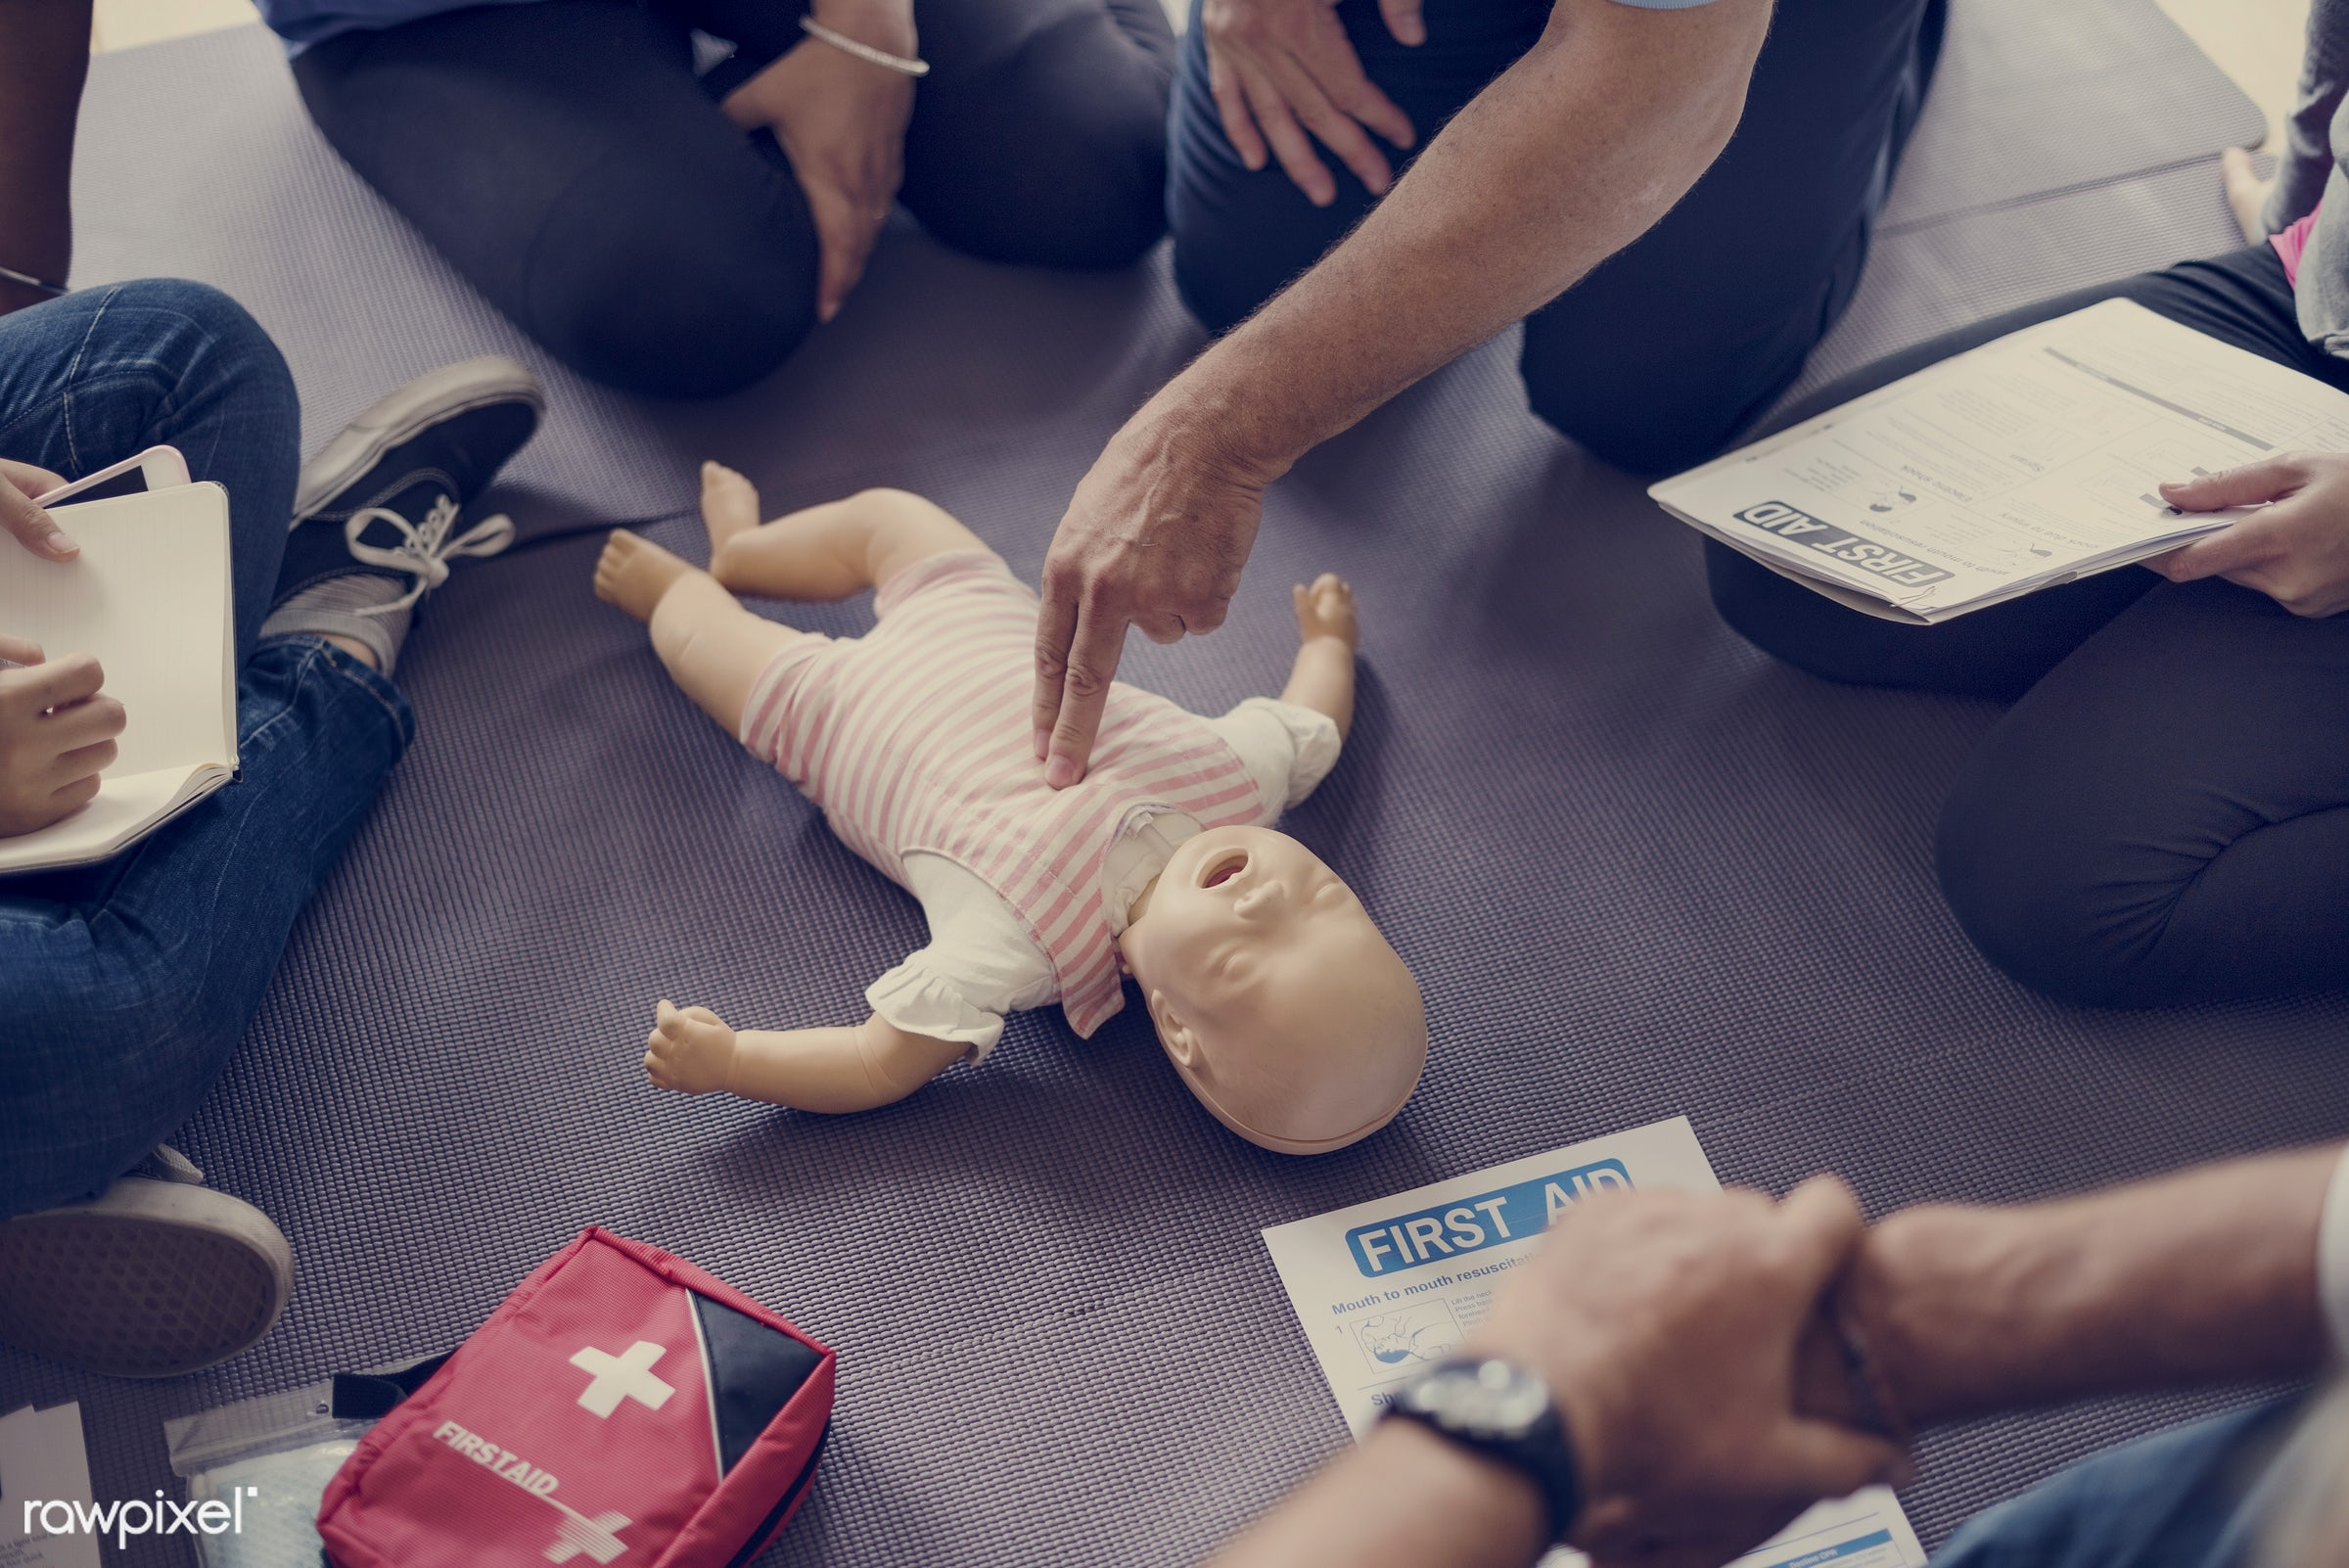 cpr training, person, knowledge, save, first aid, treatment, resuscitation, emergency, indoors, aid, people, emergency...